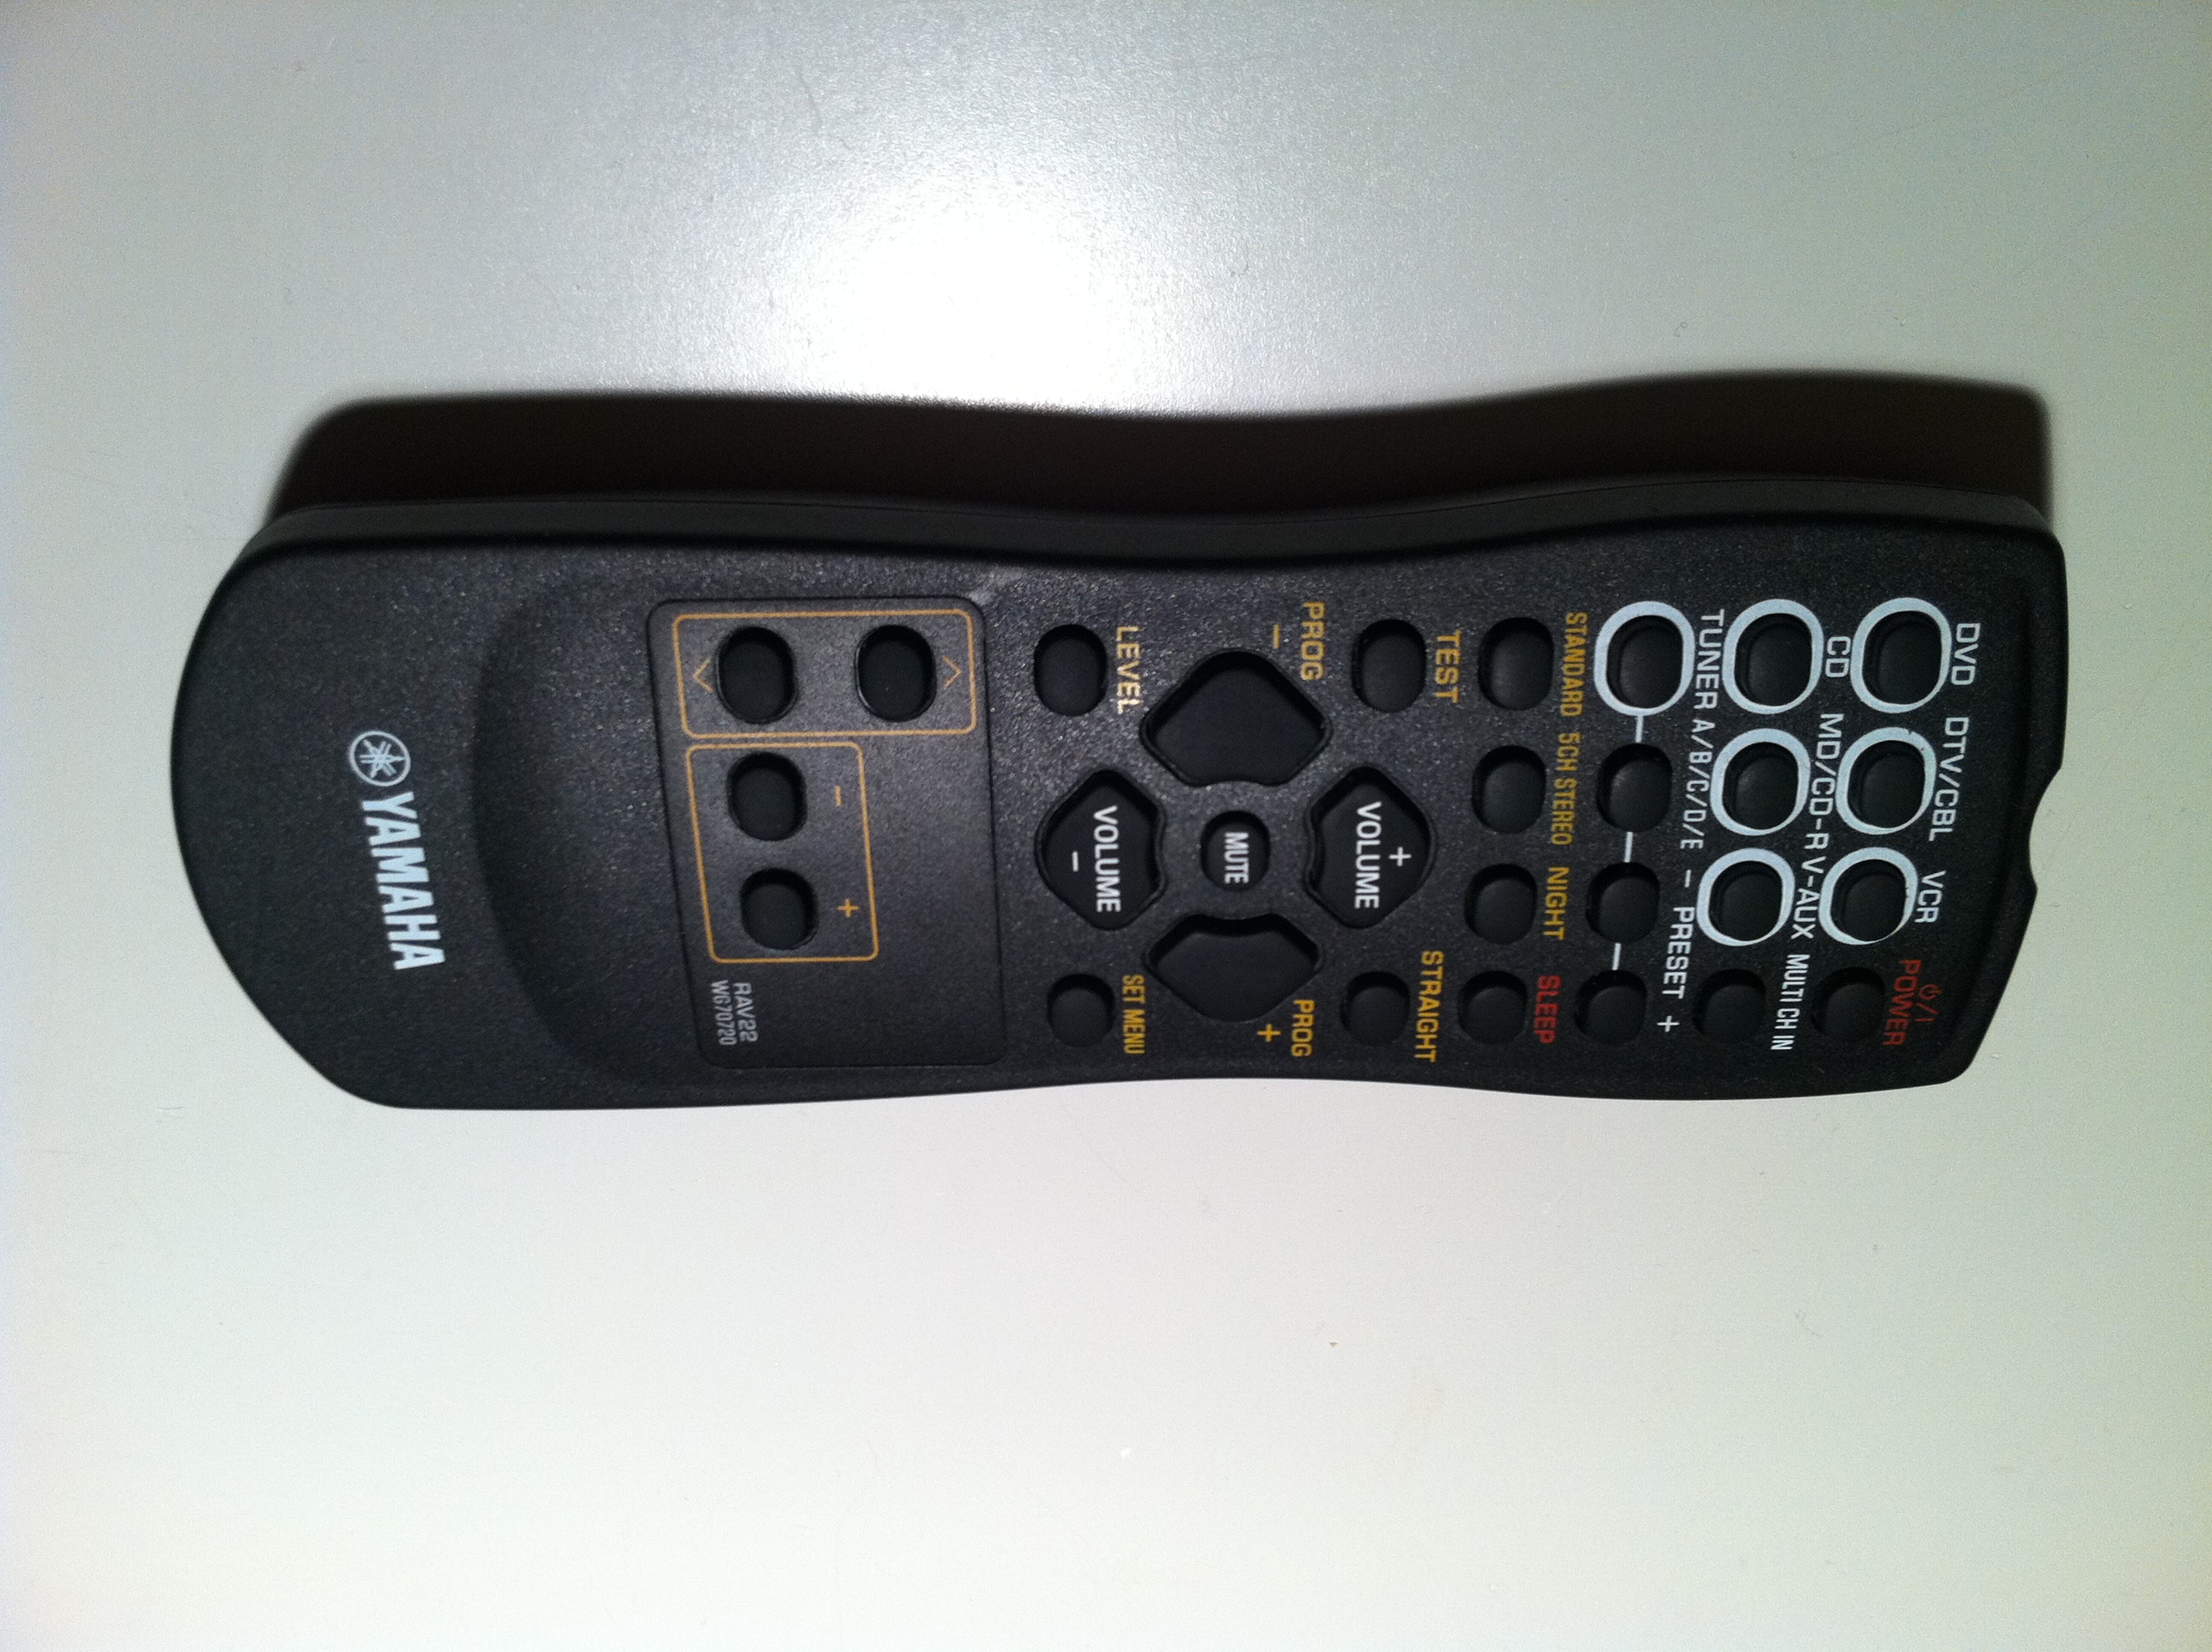 Yamaha Receiver Remote Code For Rav